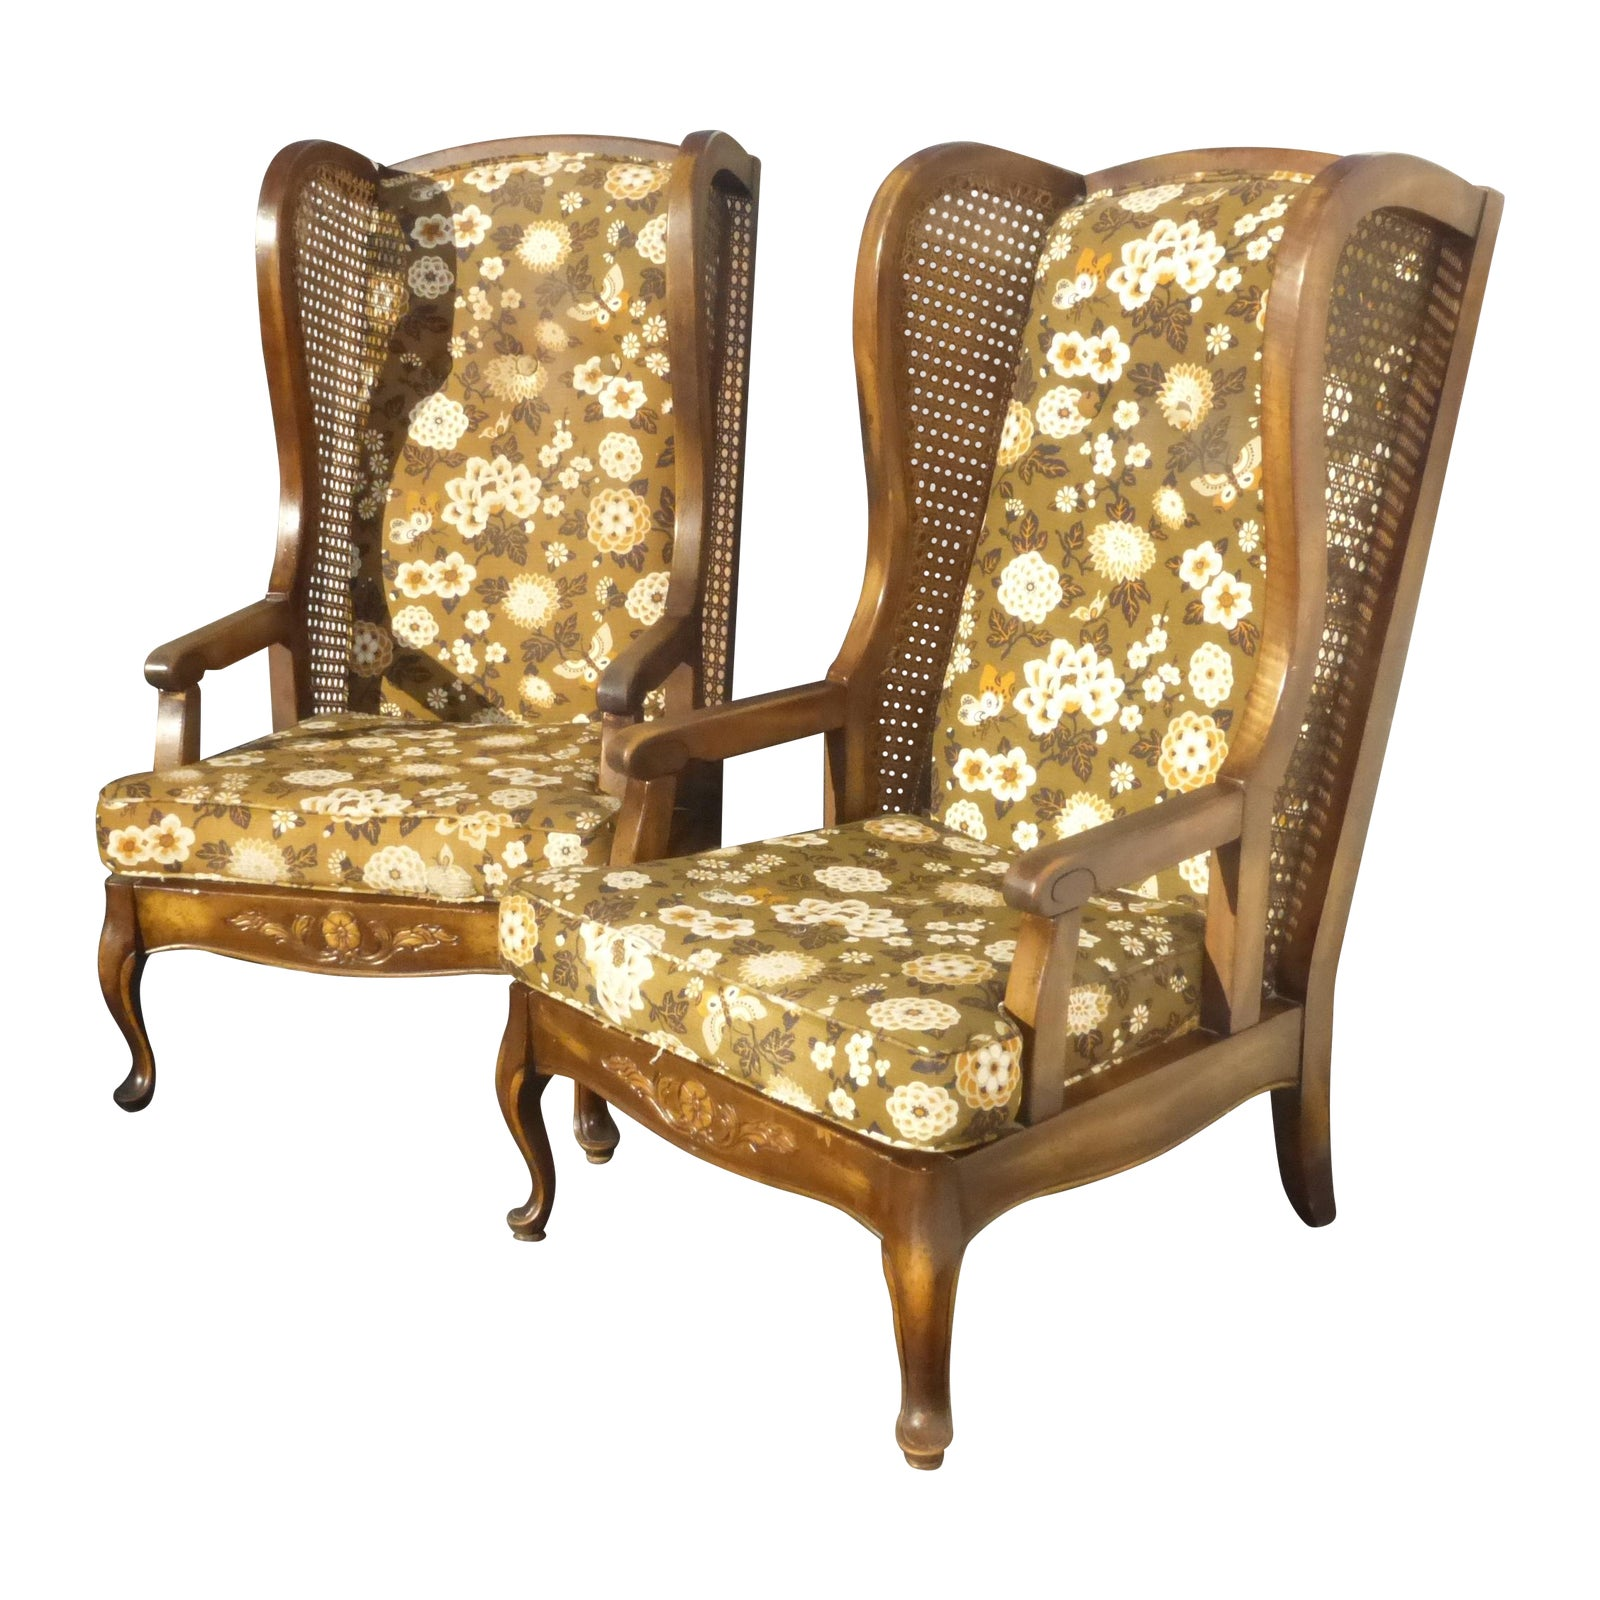 Midcentury Cane Wing Back Floral Arm Chairs - Pair | Chairish